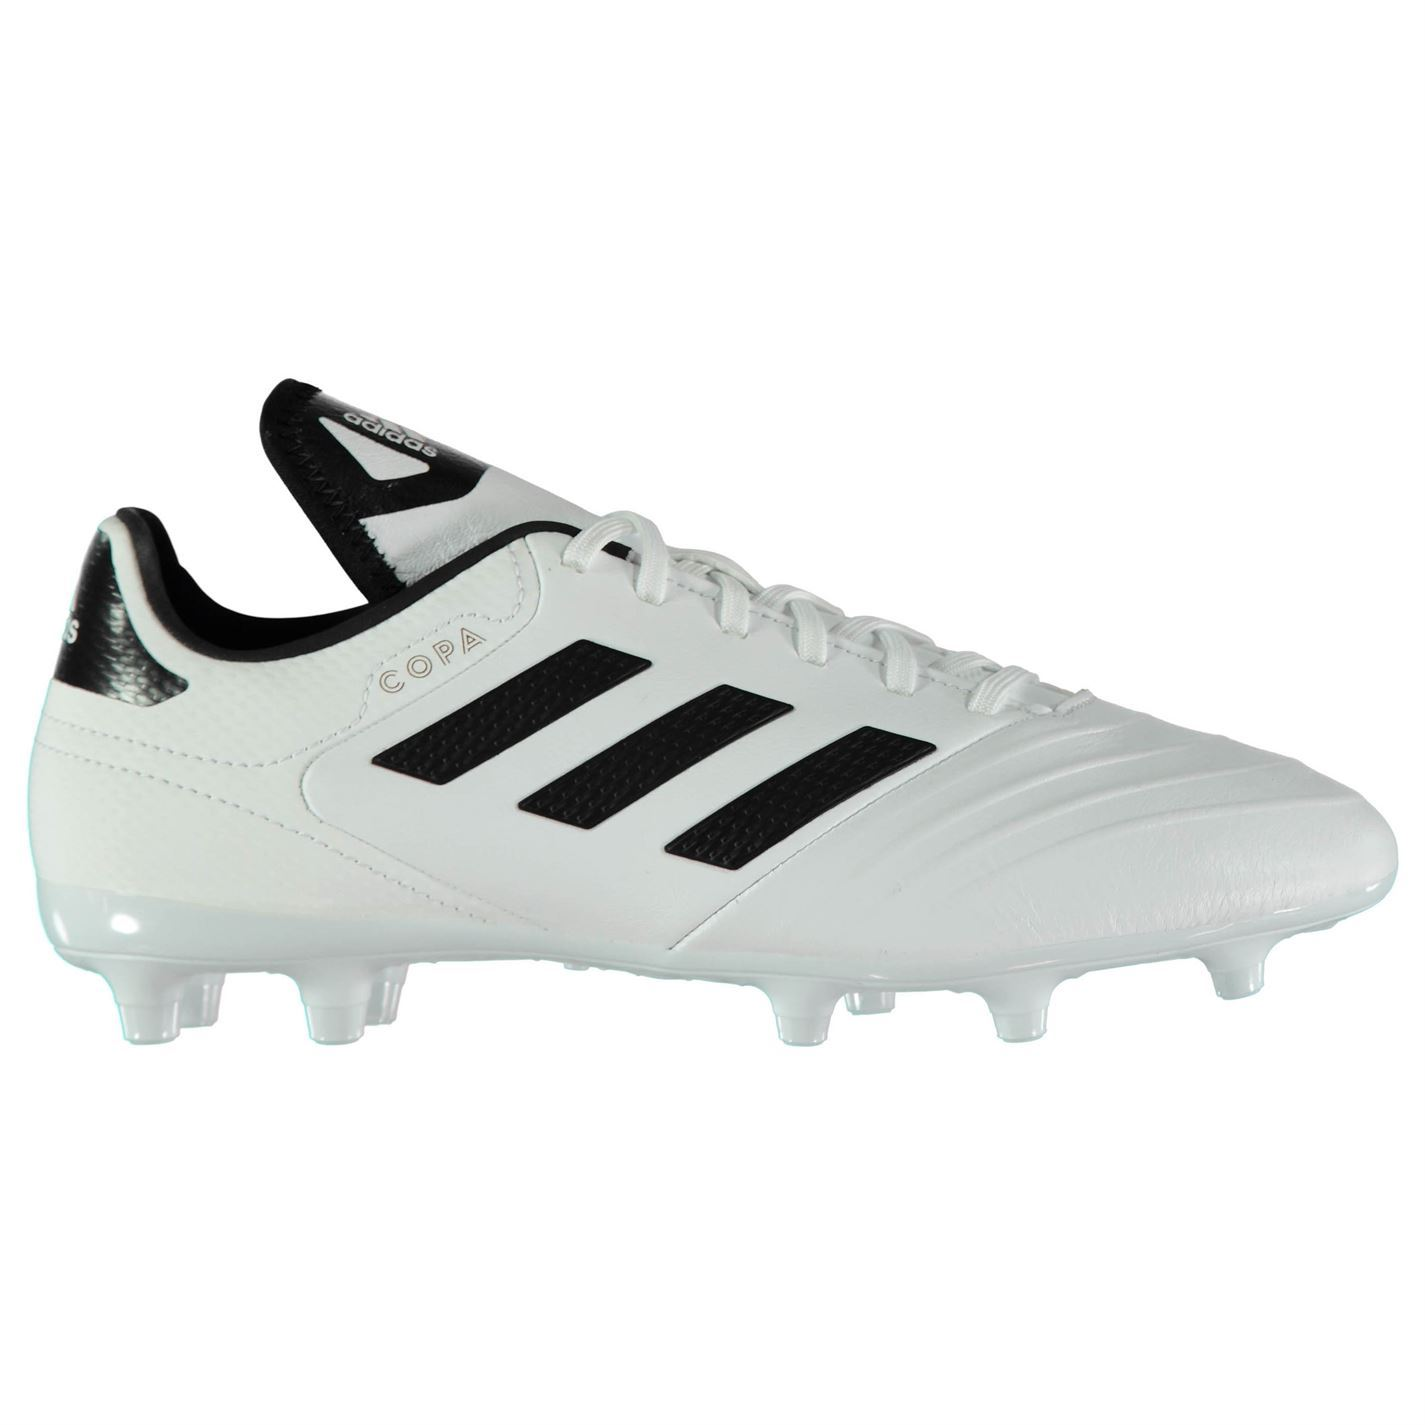 84d8532e0 ... adidas Copa 18.3 Firm Ground Football Boots Mens White Black Gold  Soccer Cleats ...